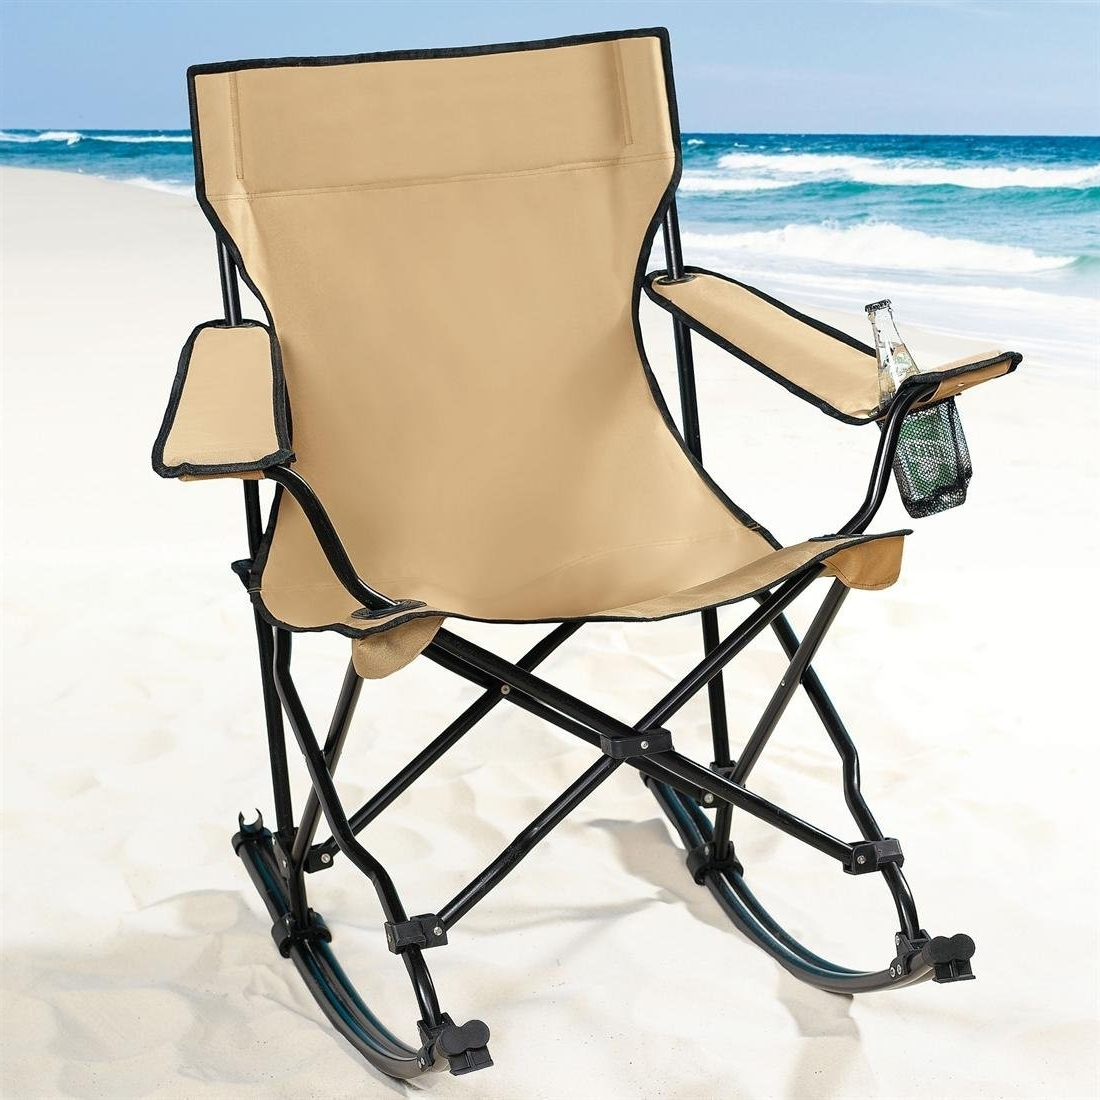 Folding Rocking Chair For Camping : Functional Folding Rocking Chair Throughout Recent Folding Rocking Chairs (View 9 of 20)